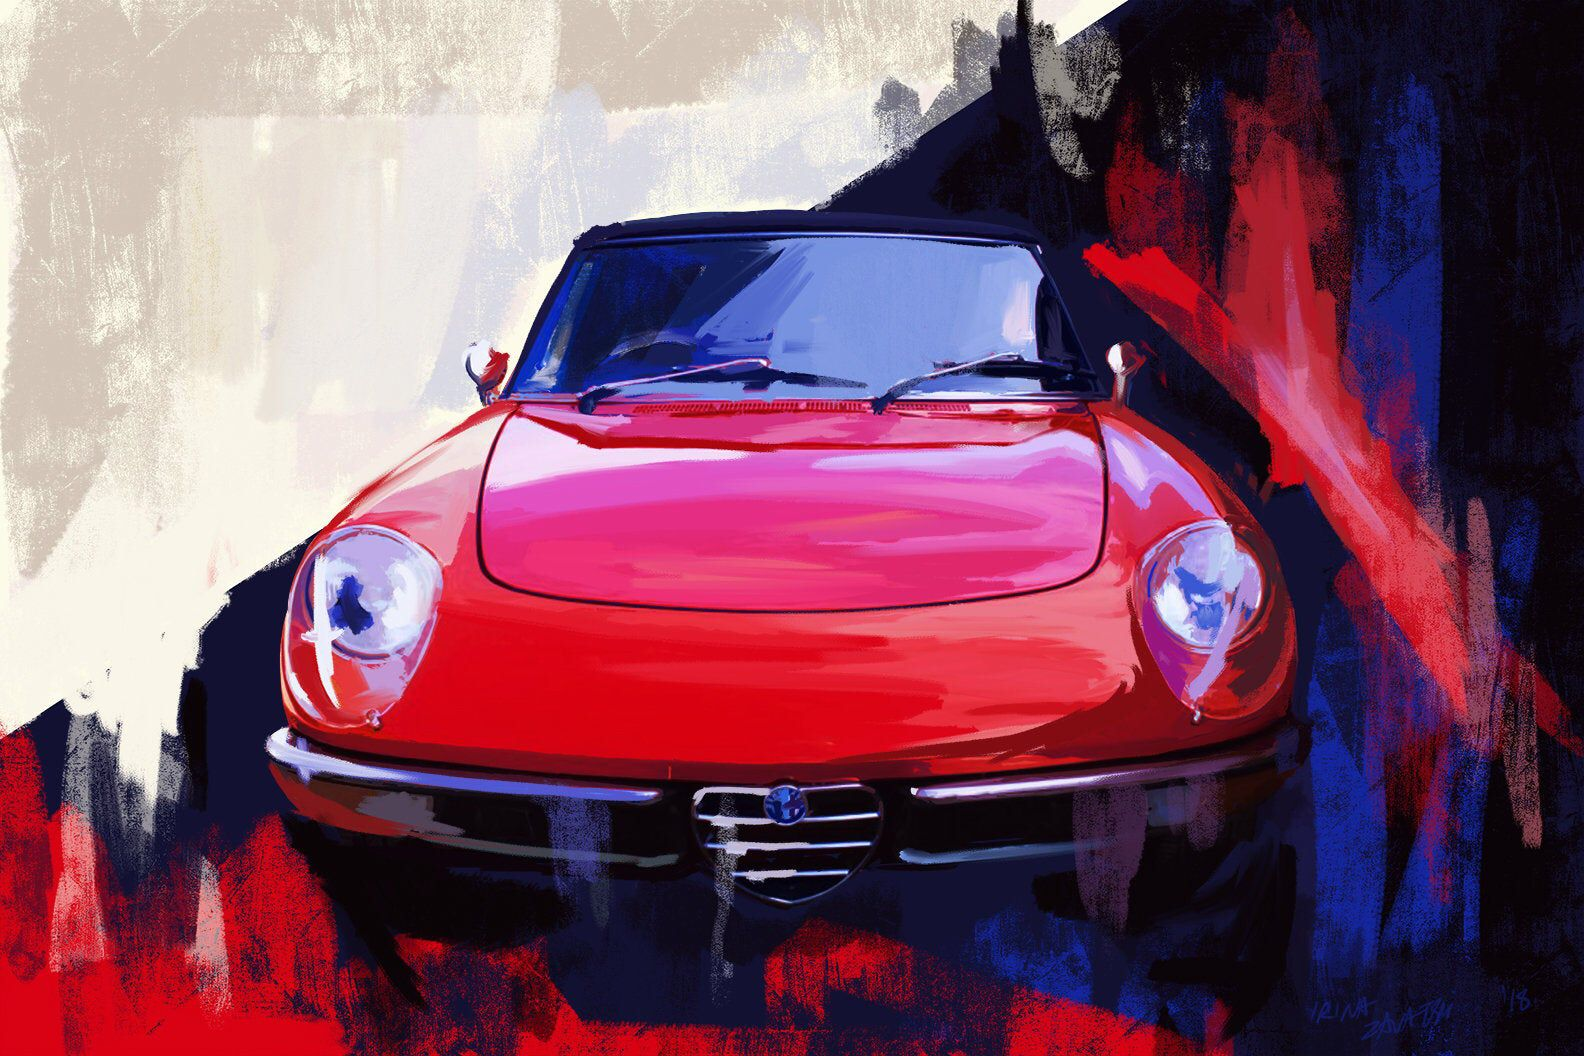 1967 Alfa Romeo Spider Classic Car painting.  large wall decor | Etsy